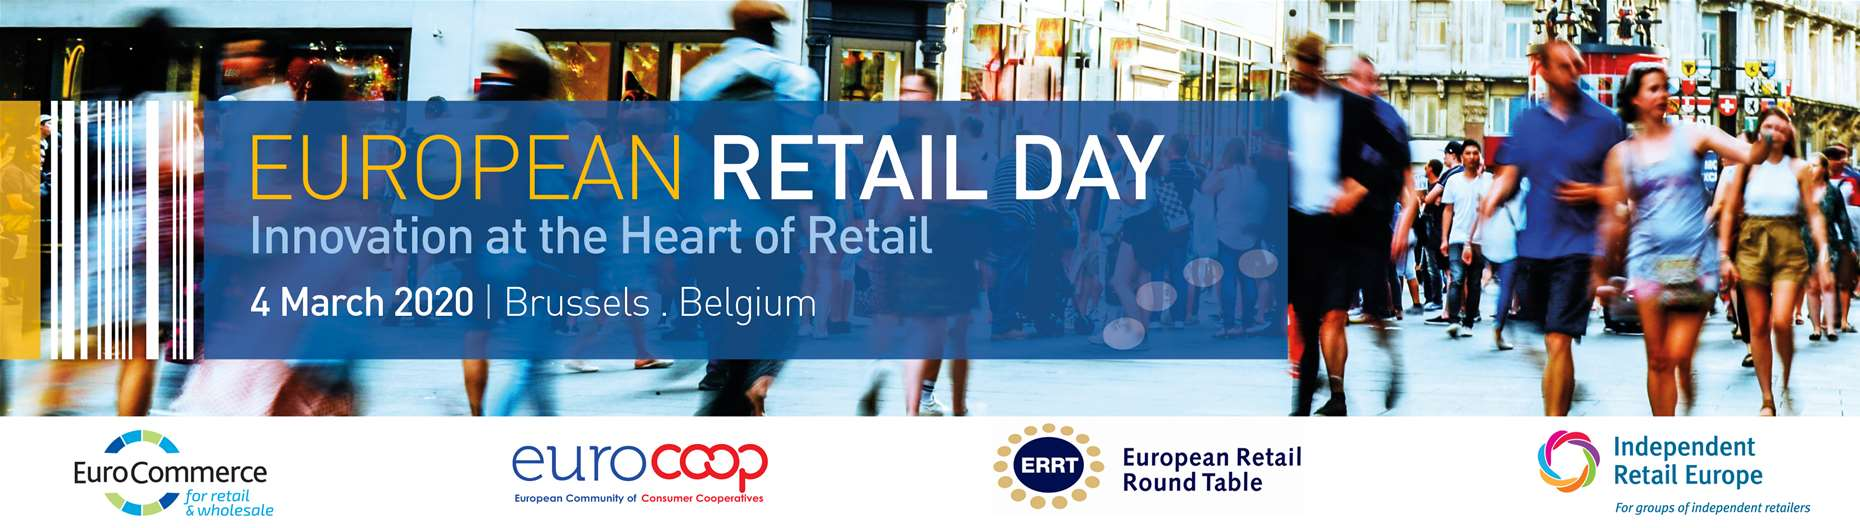 European Retail Day 2020